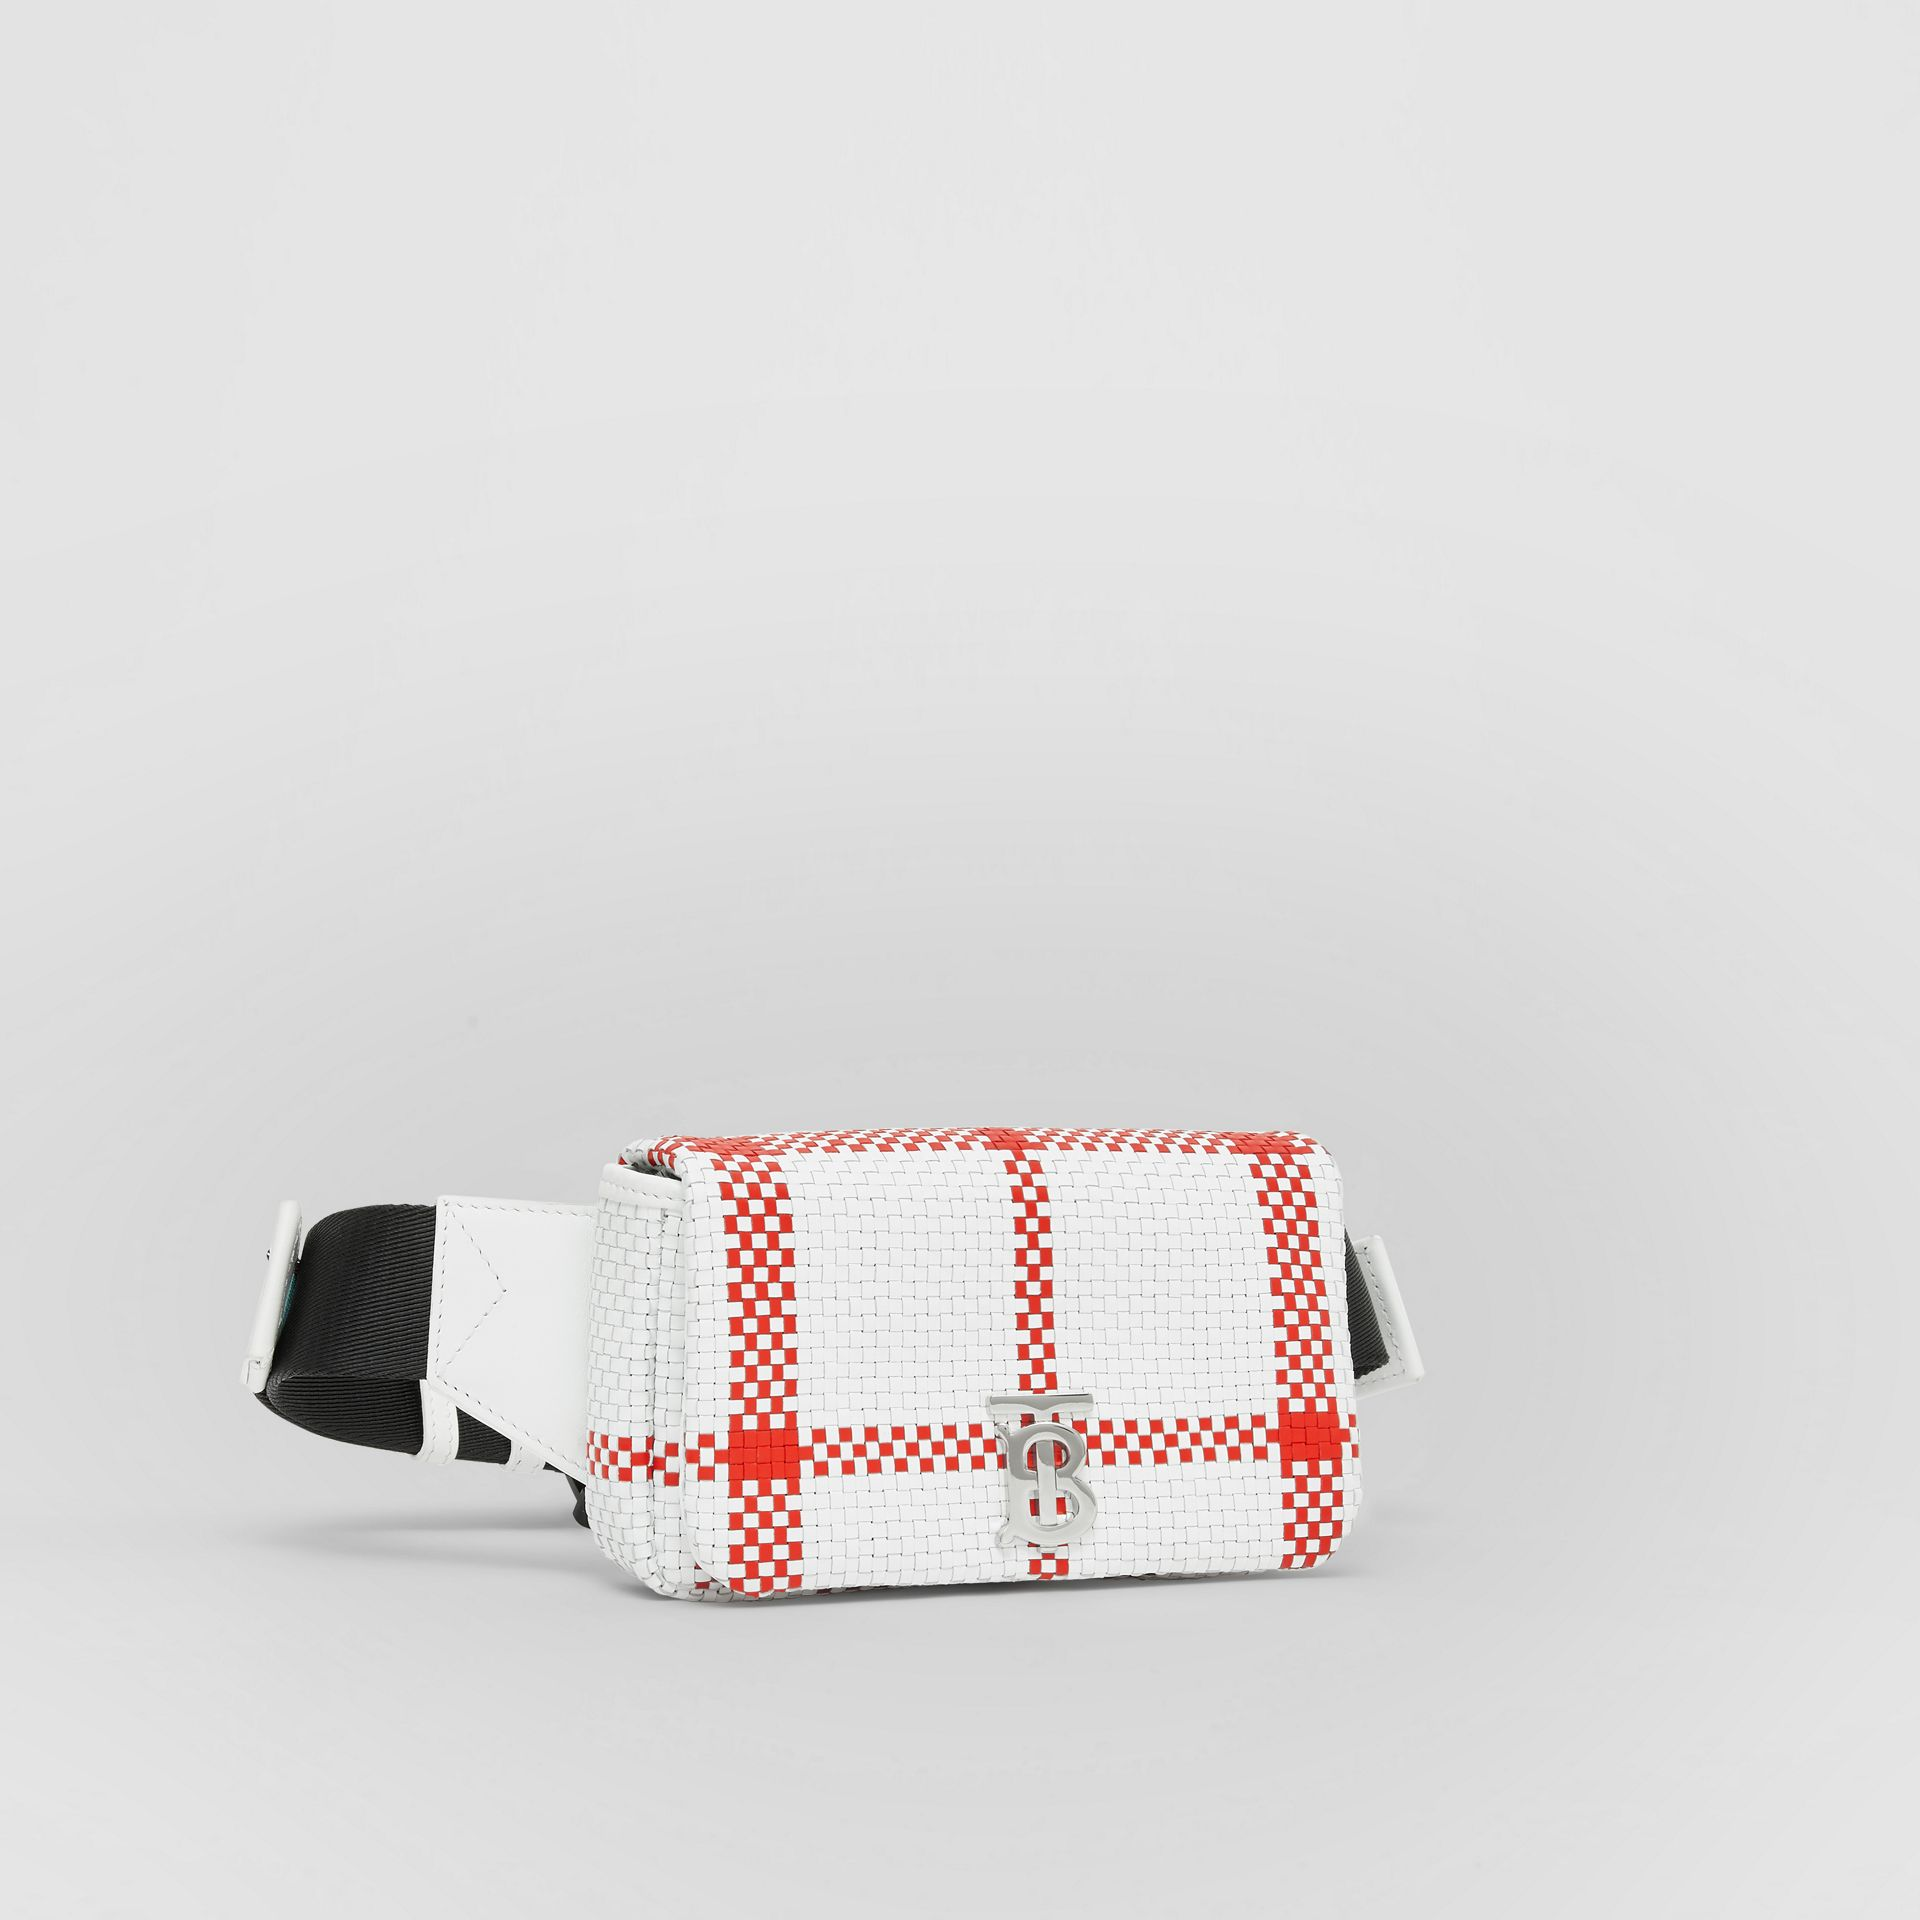 Latticed Leather Lola Bum Bag in White/red - Women | Burberry - gallery image 6